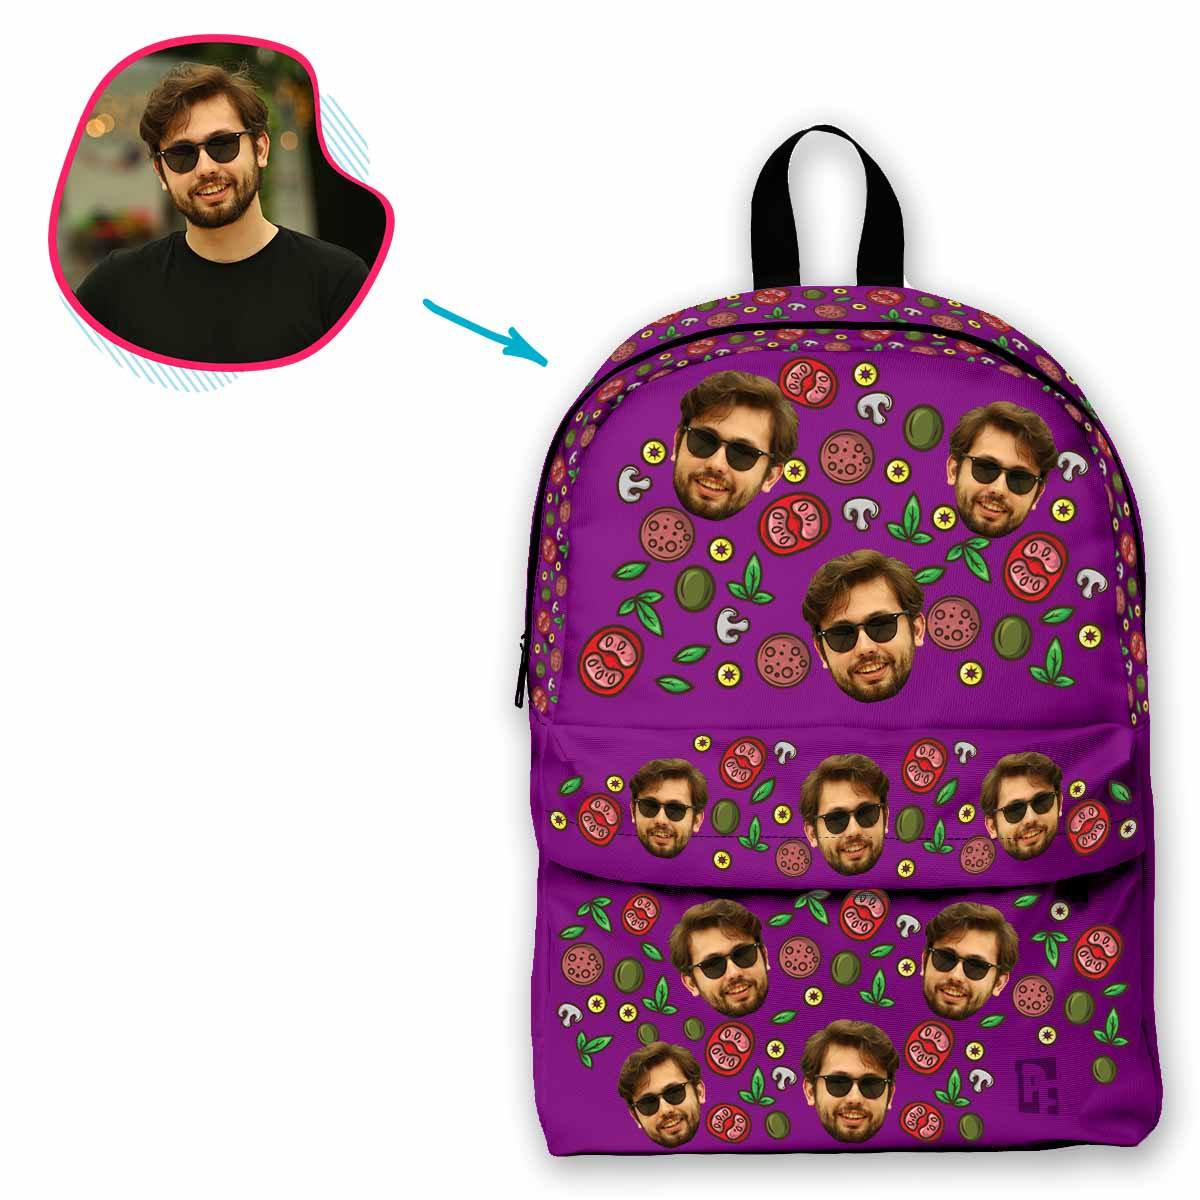 purple Pizza classic backpack personalized with photo of face printed on it